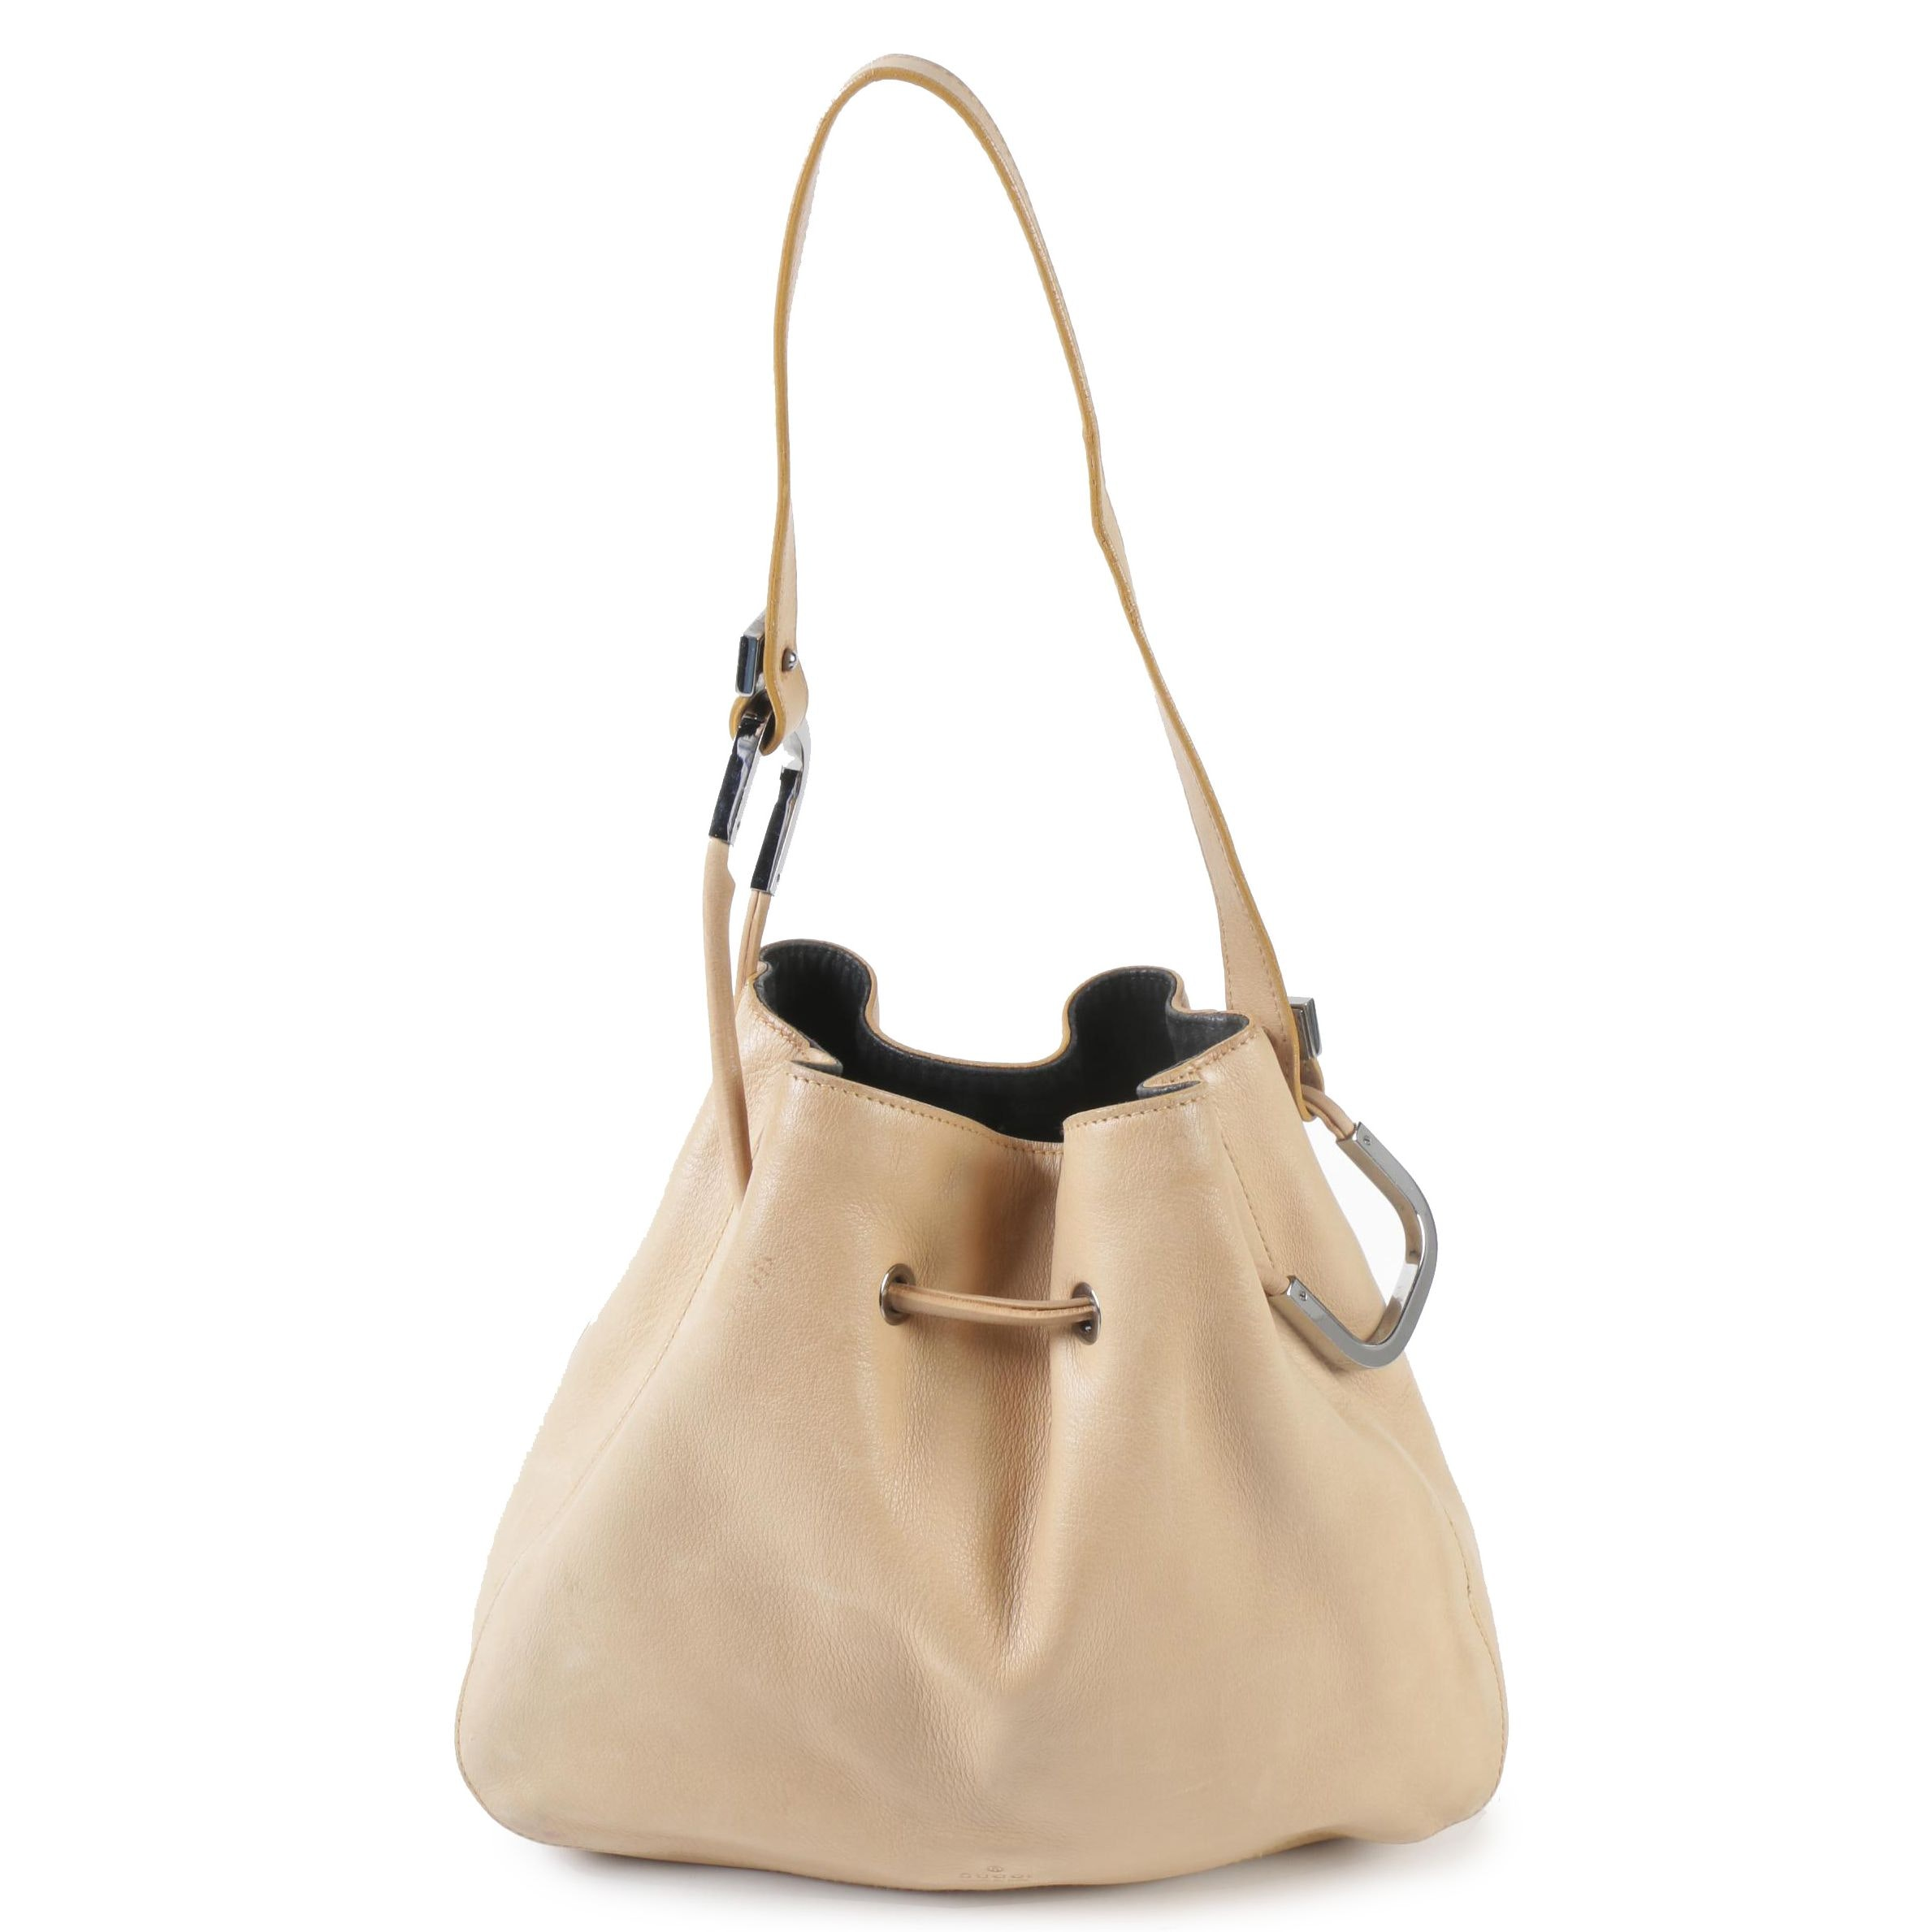 Gucci Beige Leather Drawstring Hobo Bag, Made in Italy